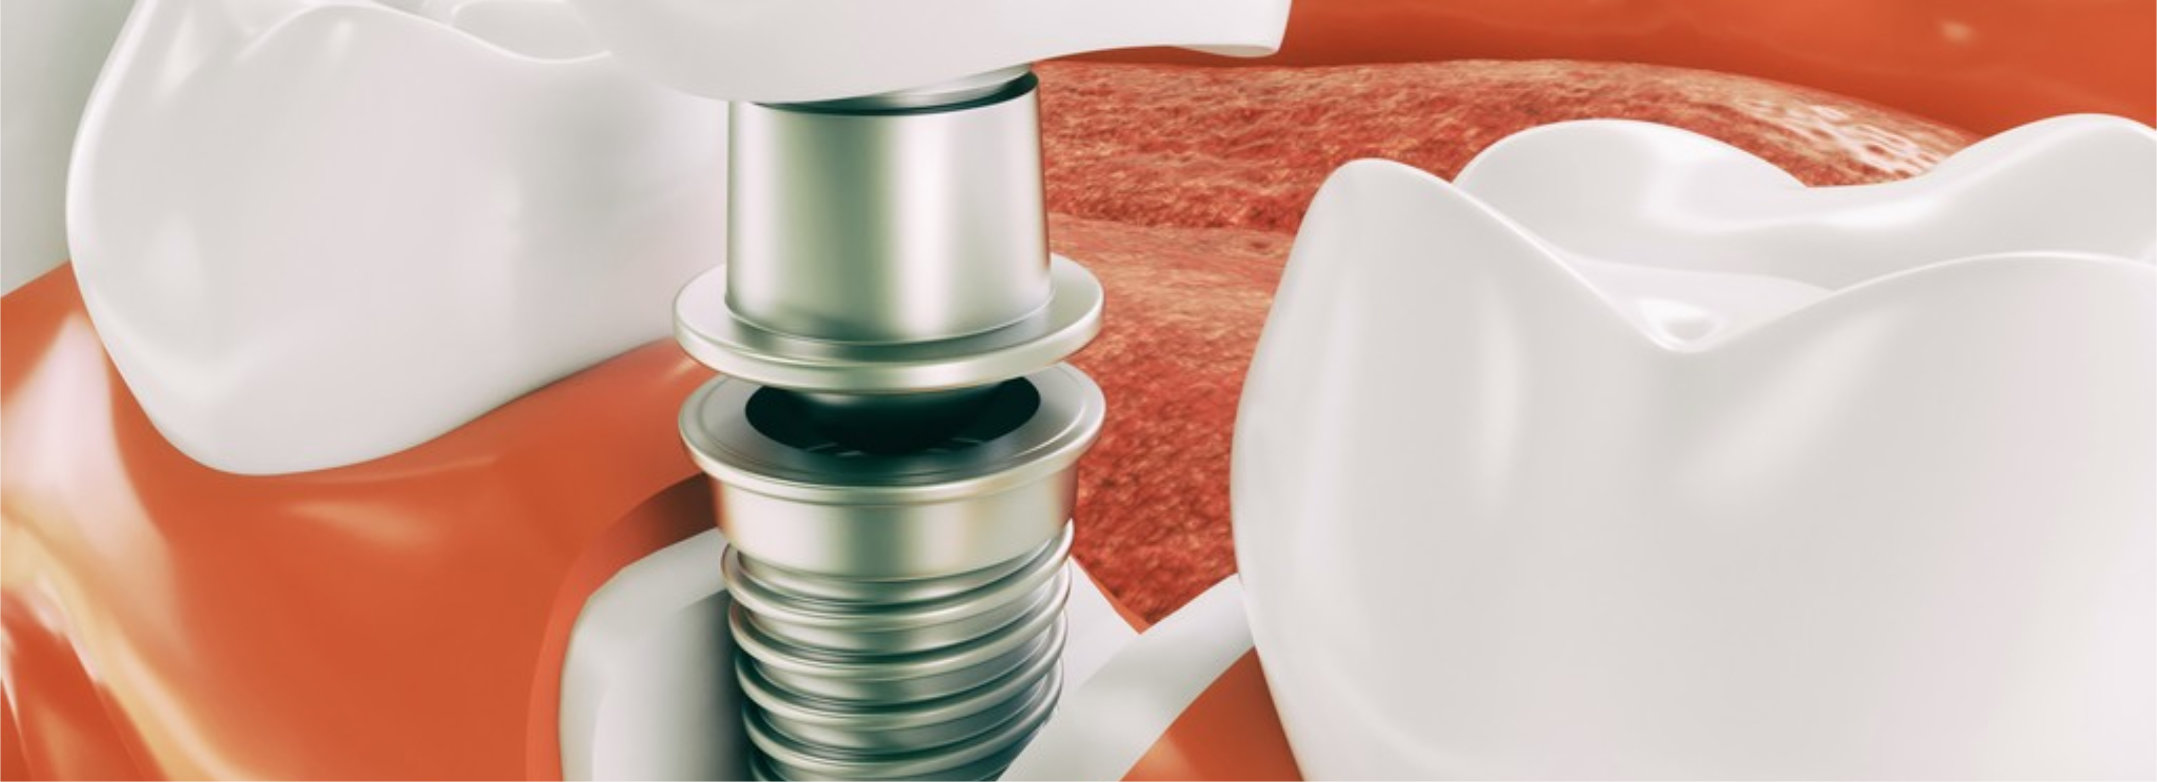 Dental implant on the example of a jaw model